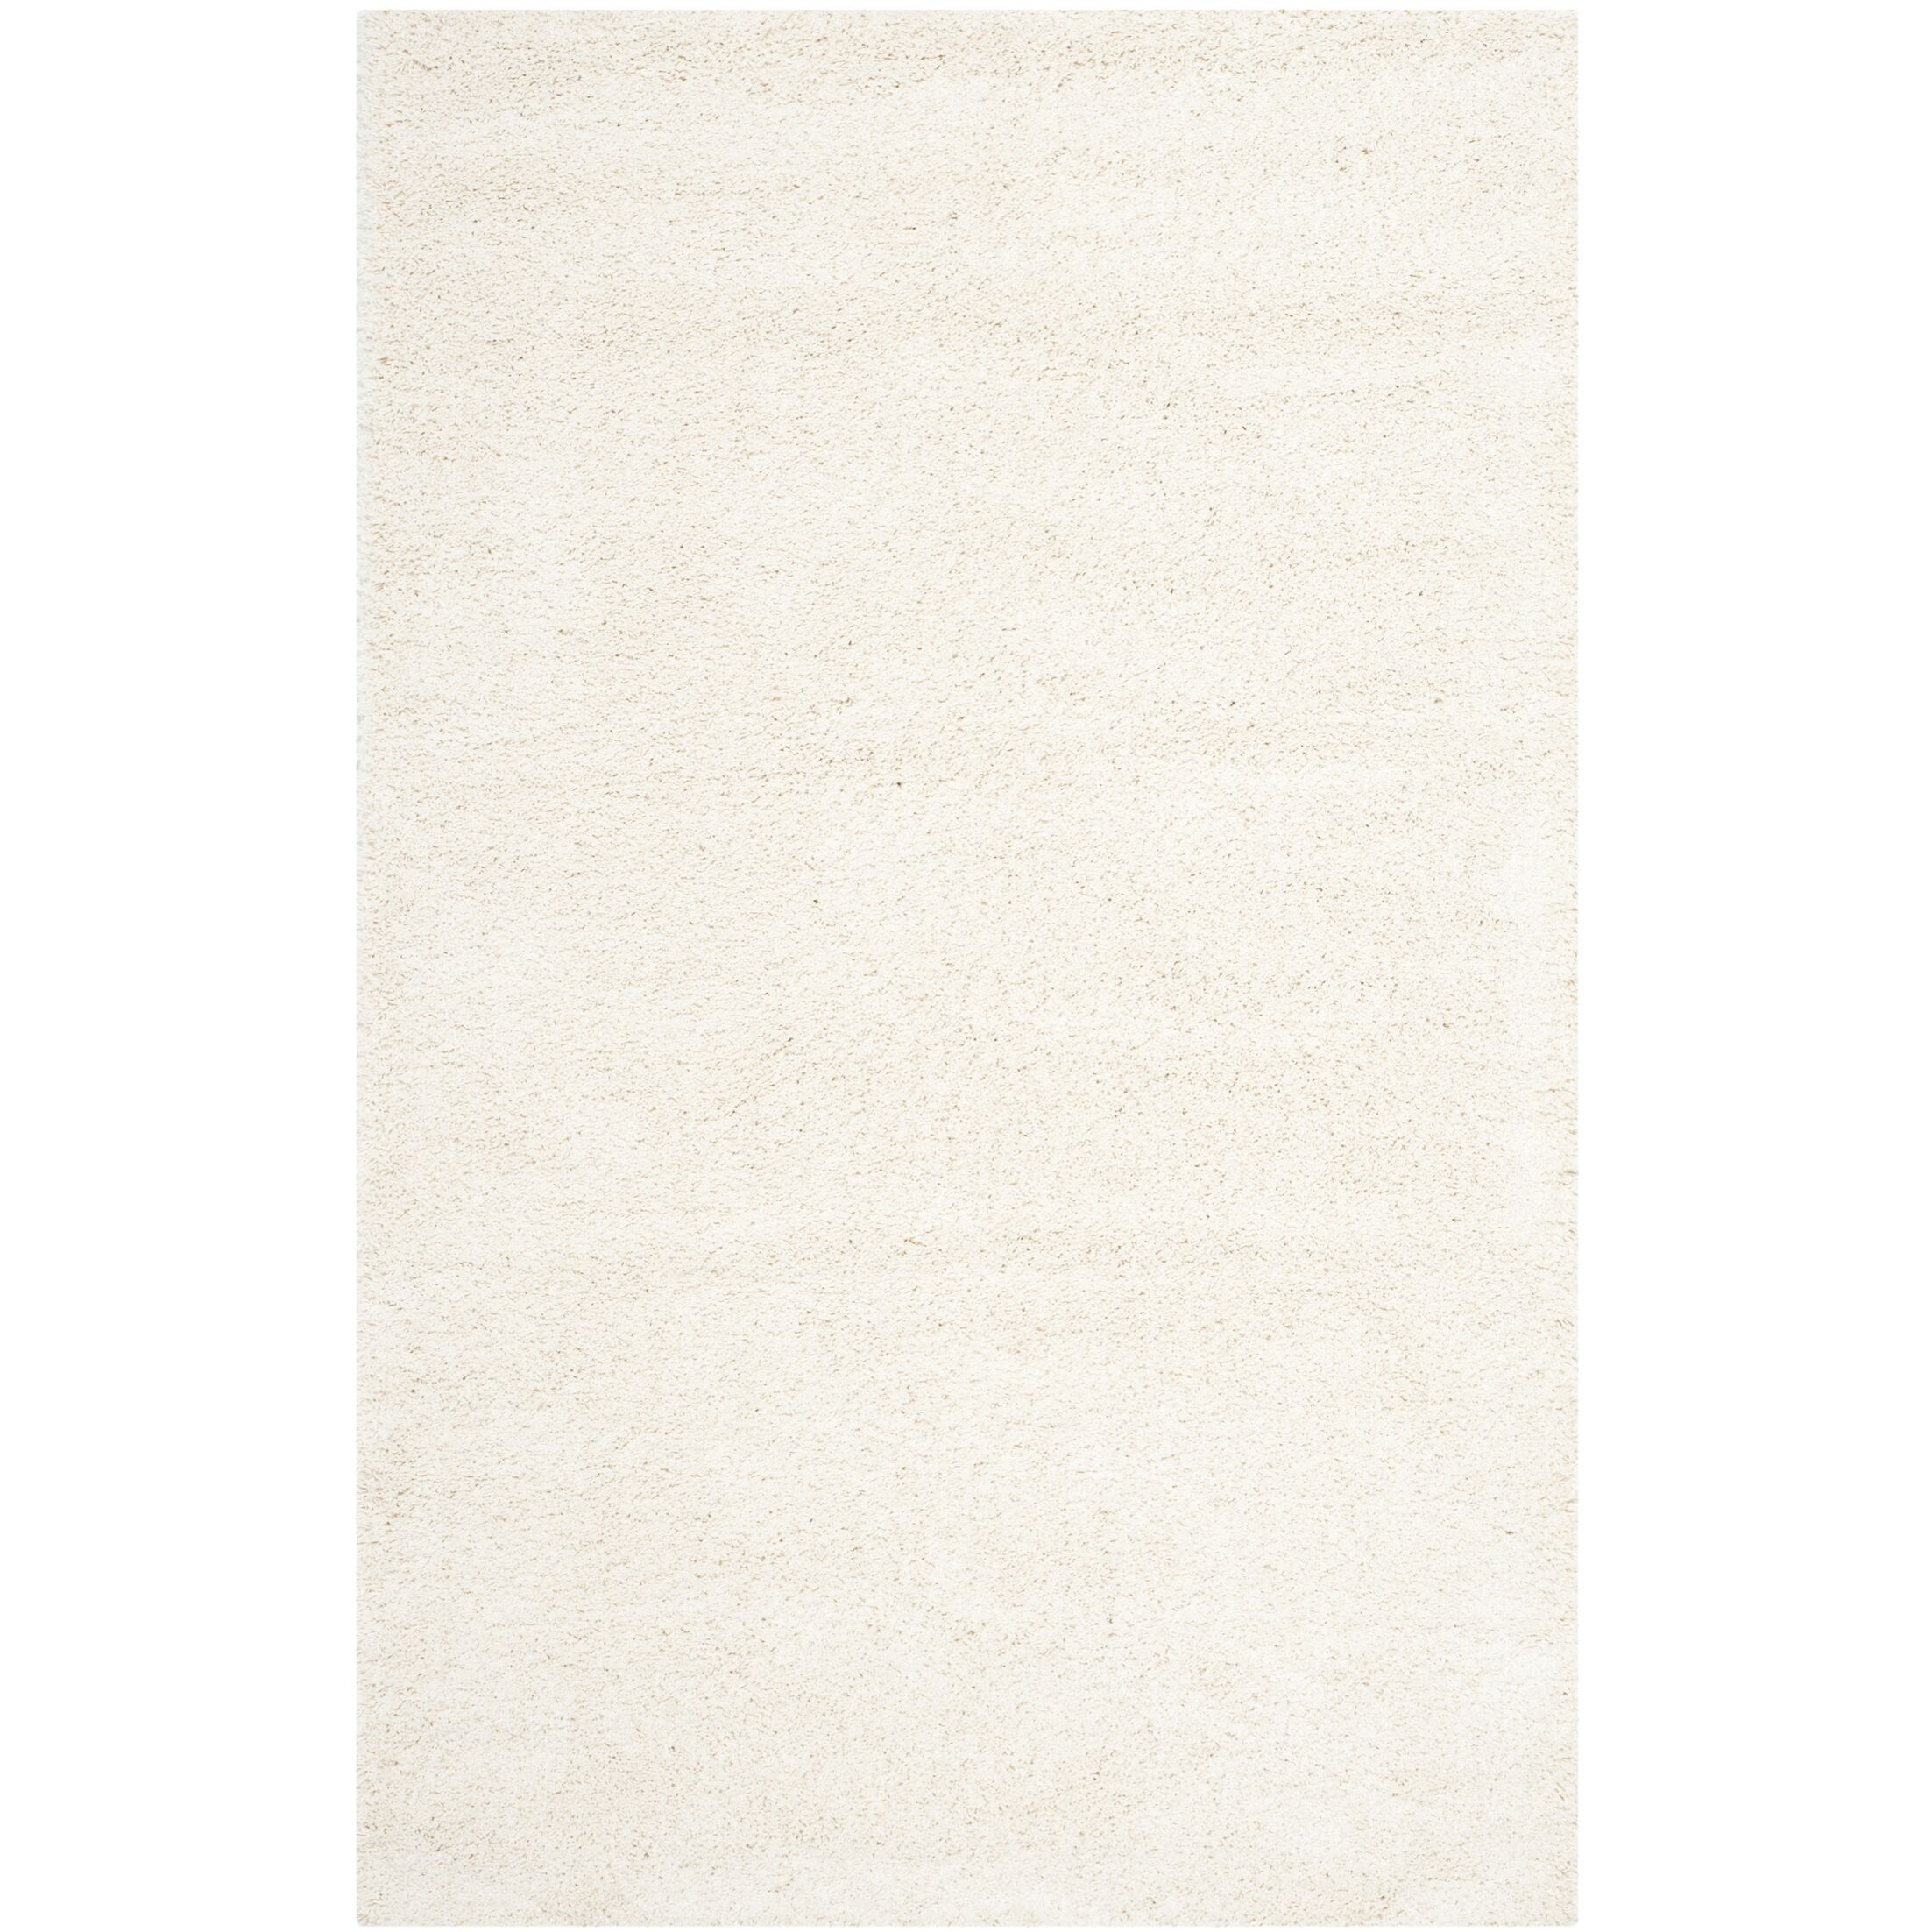 Starr Hill Solid Ivory Area Rug Rug Size: Rectangle 10' x 14'